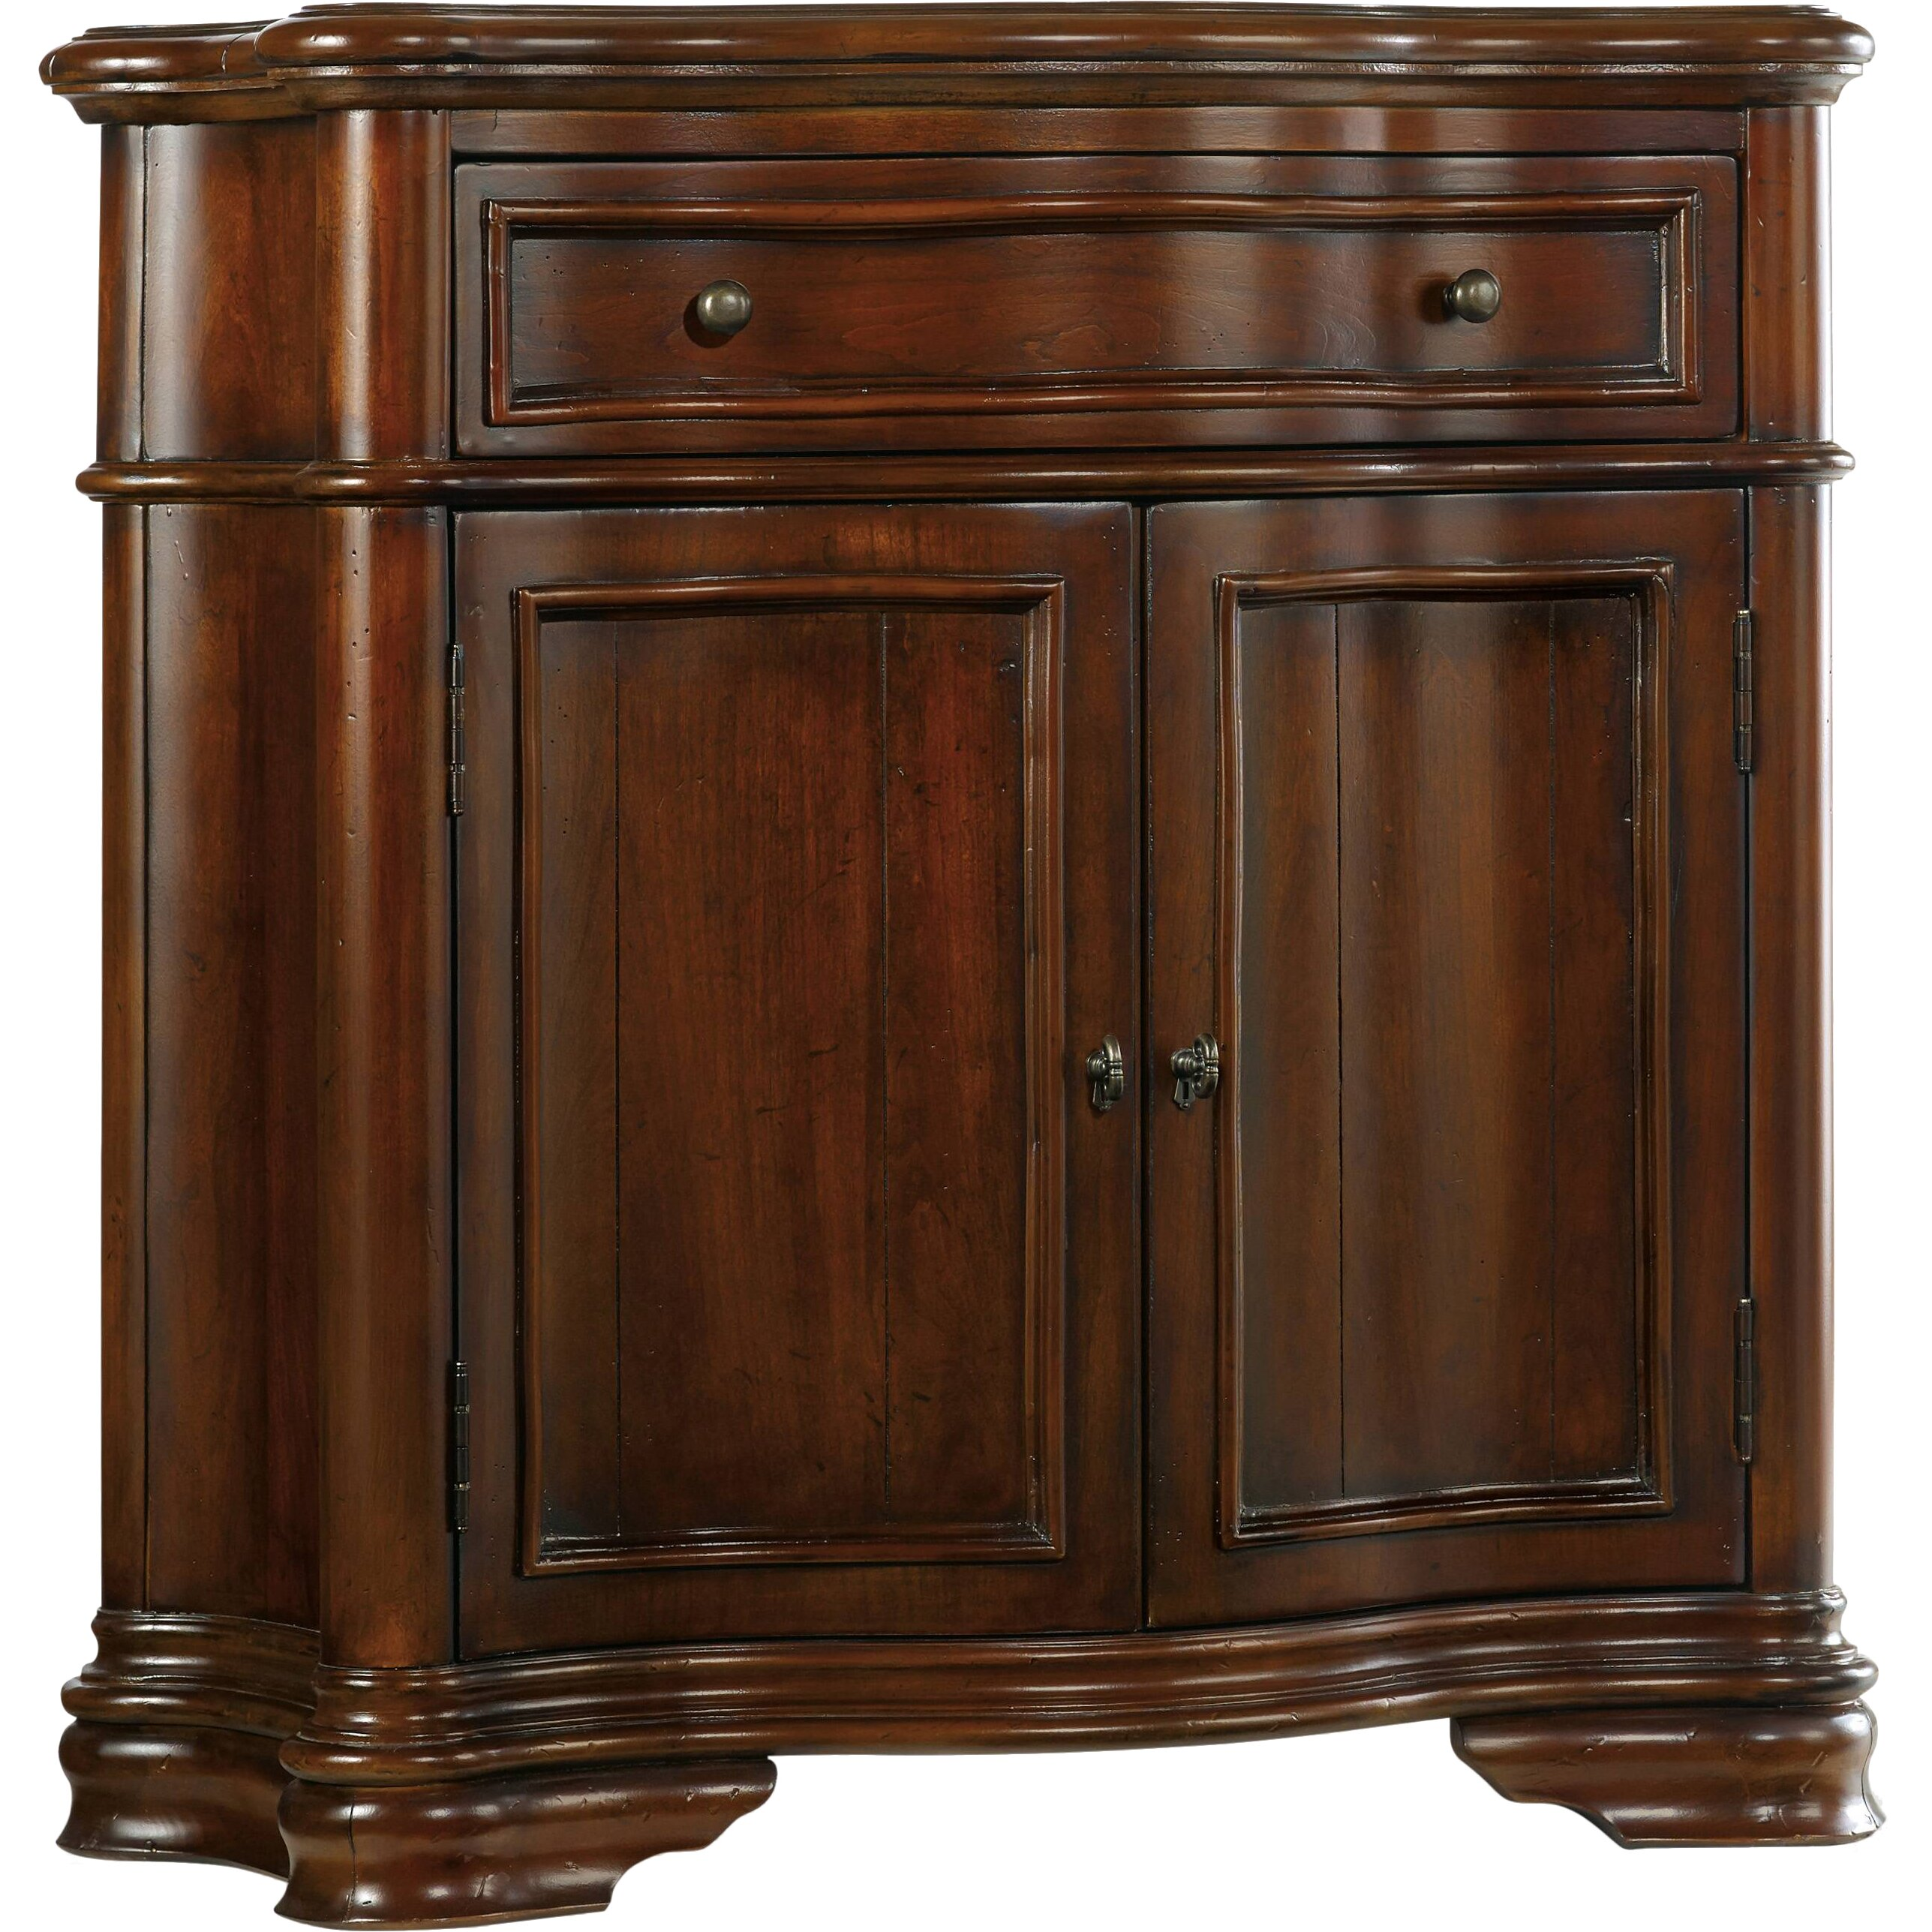 That Furniture Place: Hooker Furniture Waverly Place Shaped Hall Console Cabinet